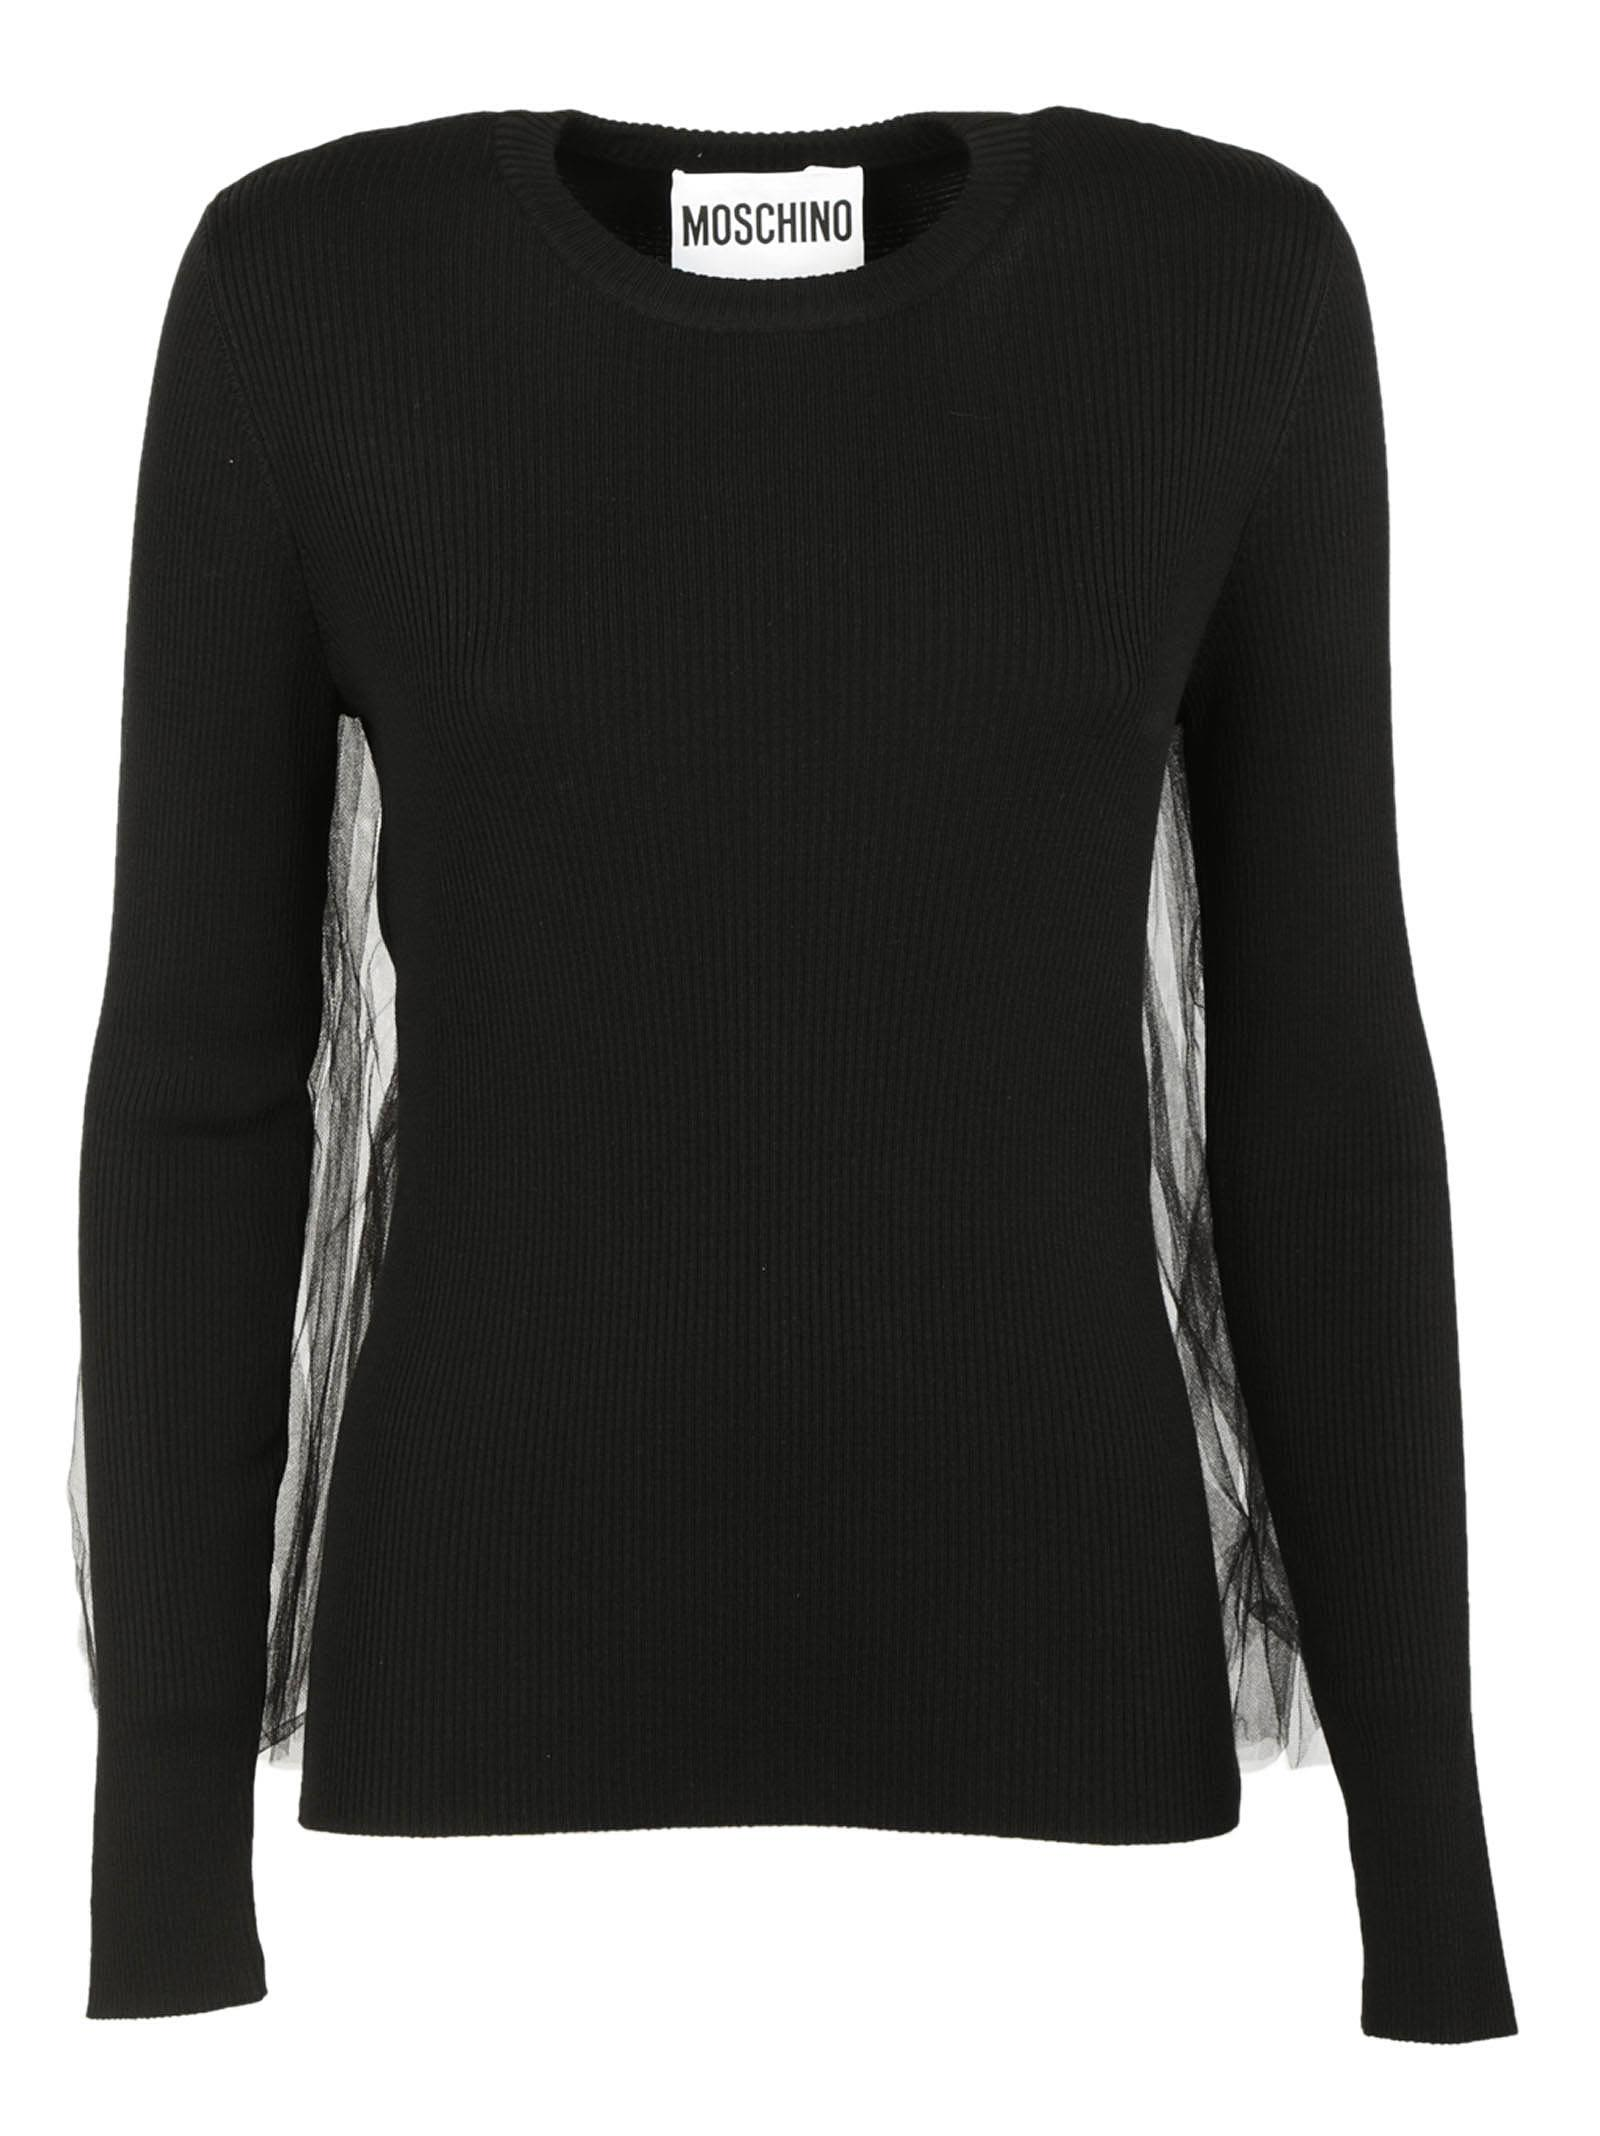 Moschino Tulle Back Sweater